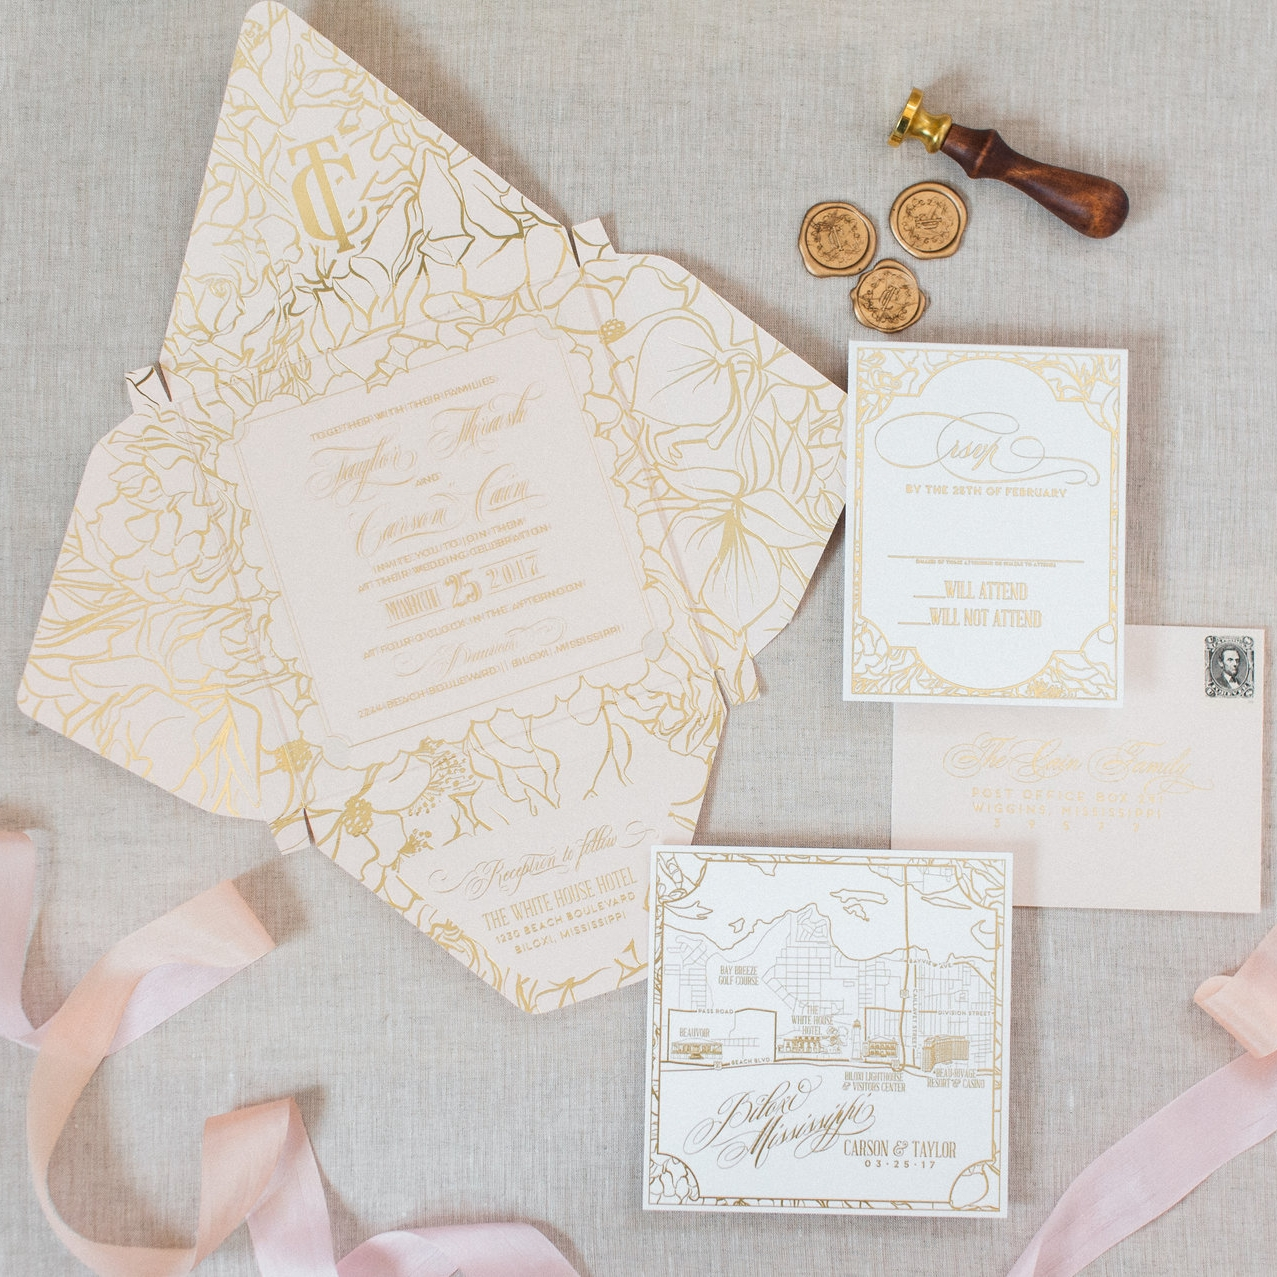 ACRYLIC BLUSH & GOLD BOXED CUSTOM WEDDING INVITATION